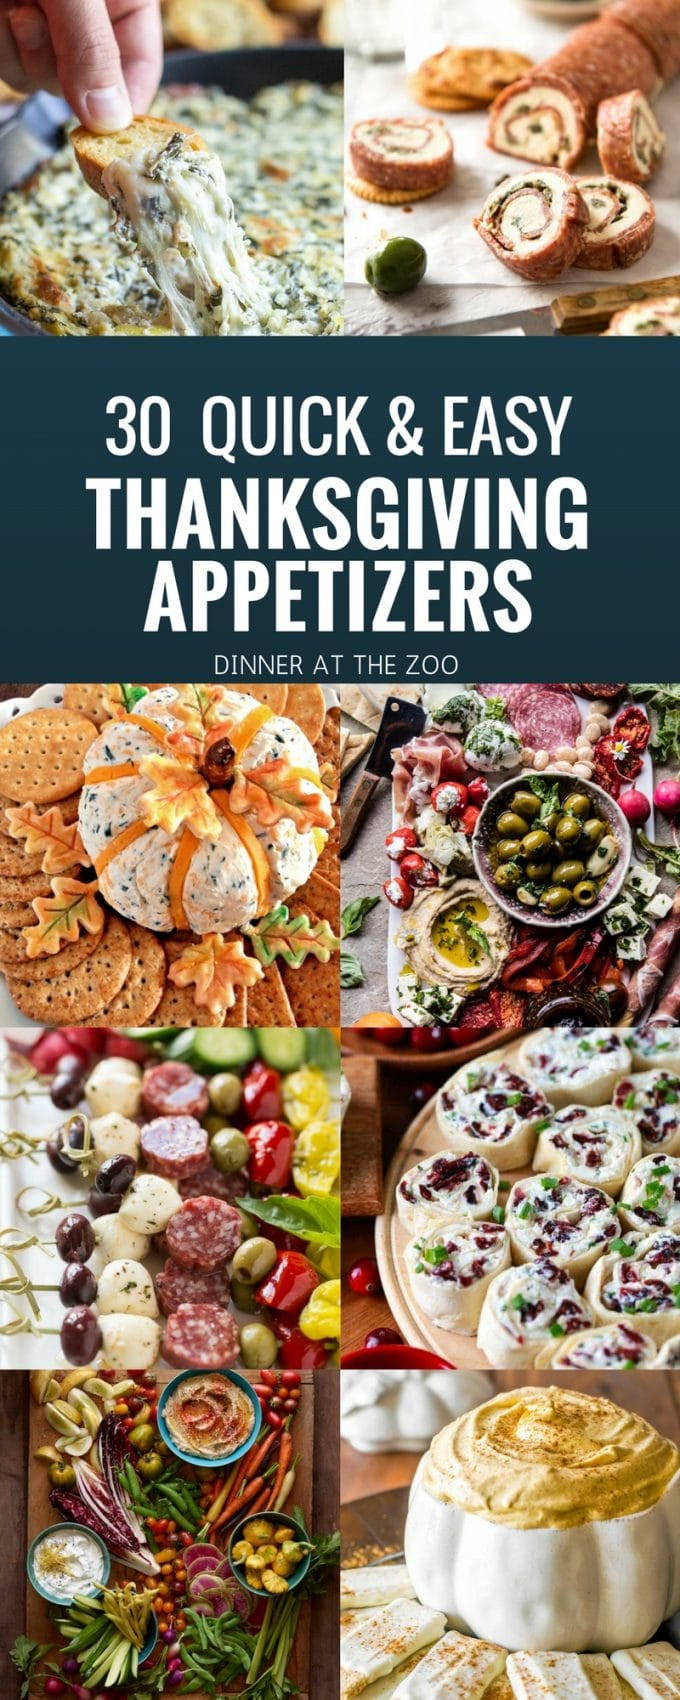 Thanksgiving Dinner Appetizers  30 Thanksgiving Appetizer Recipes Dinner at the Zoo